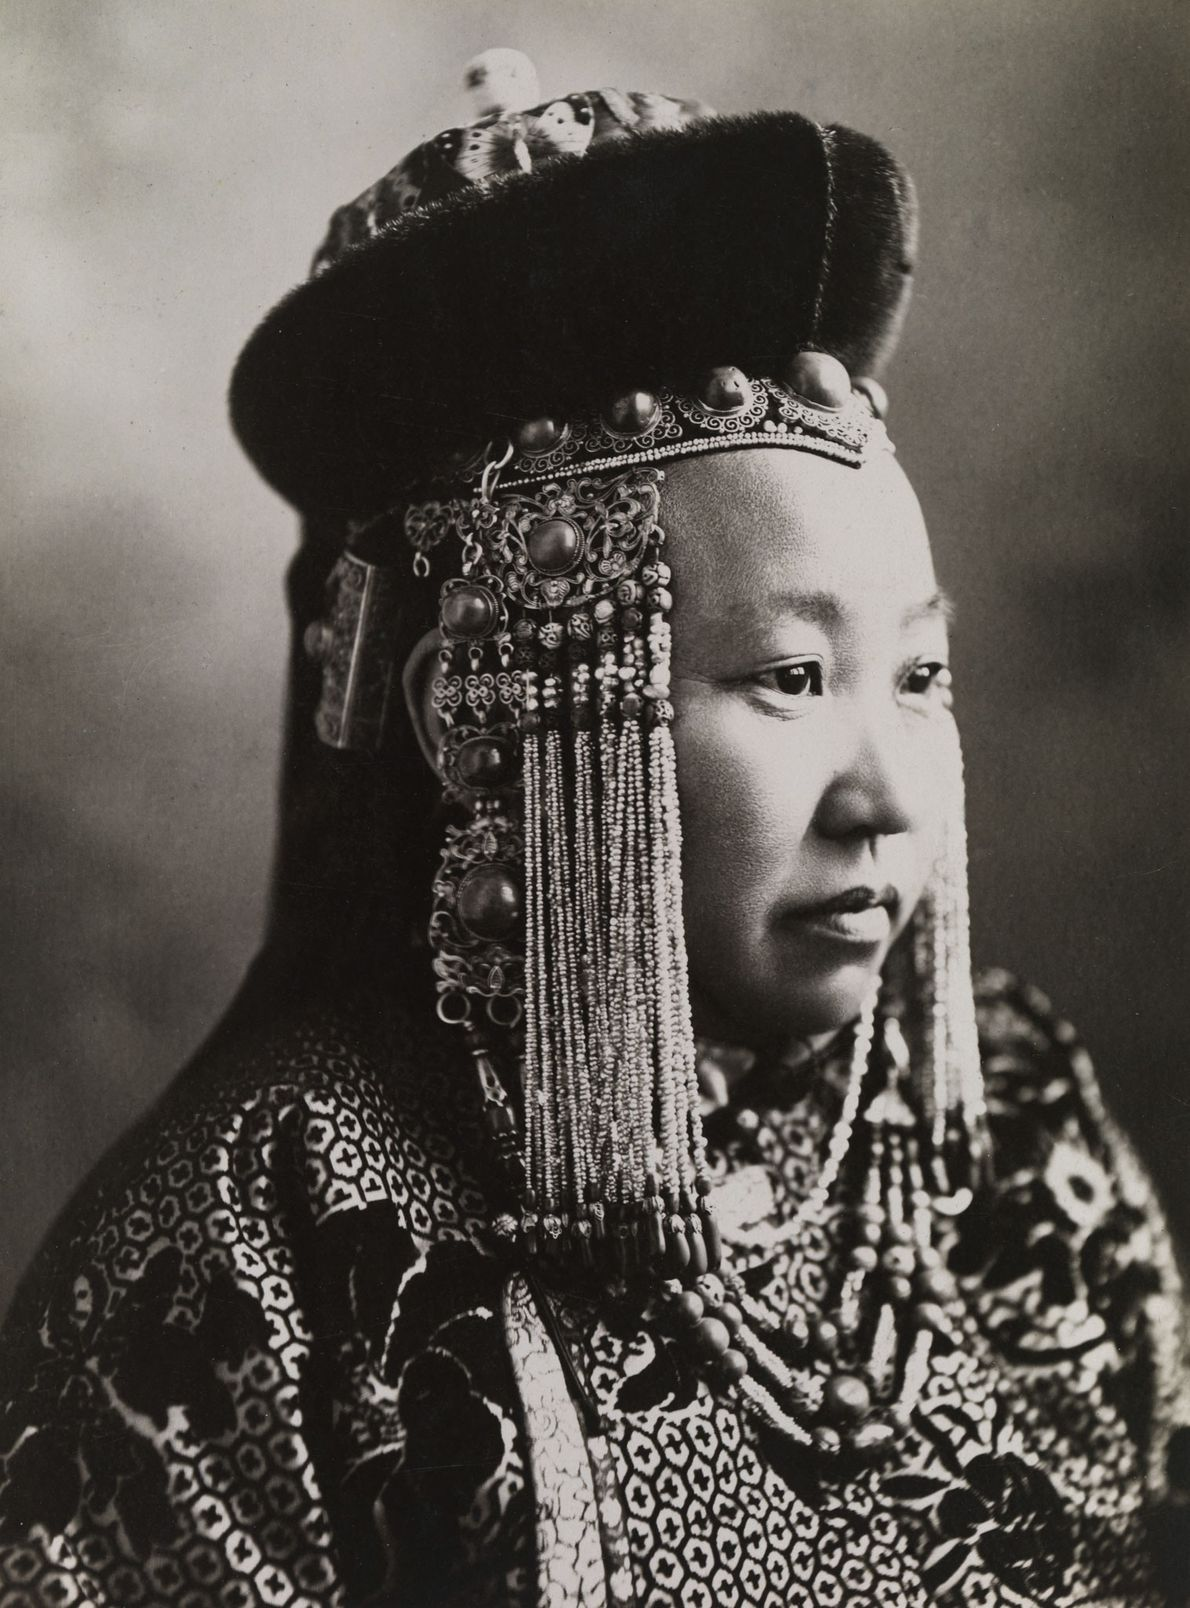 A Mongolian princess wears full court dress, including a traditional headdress.